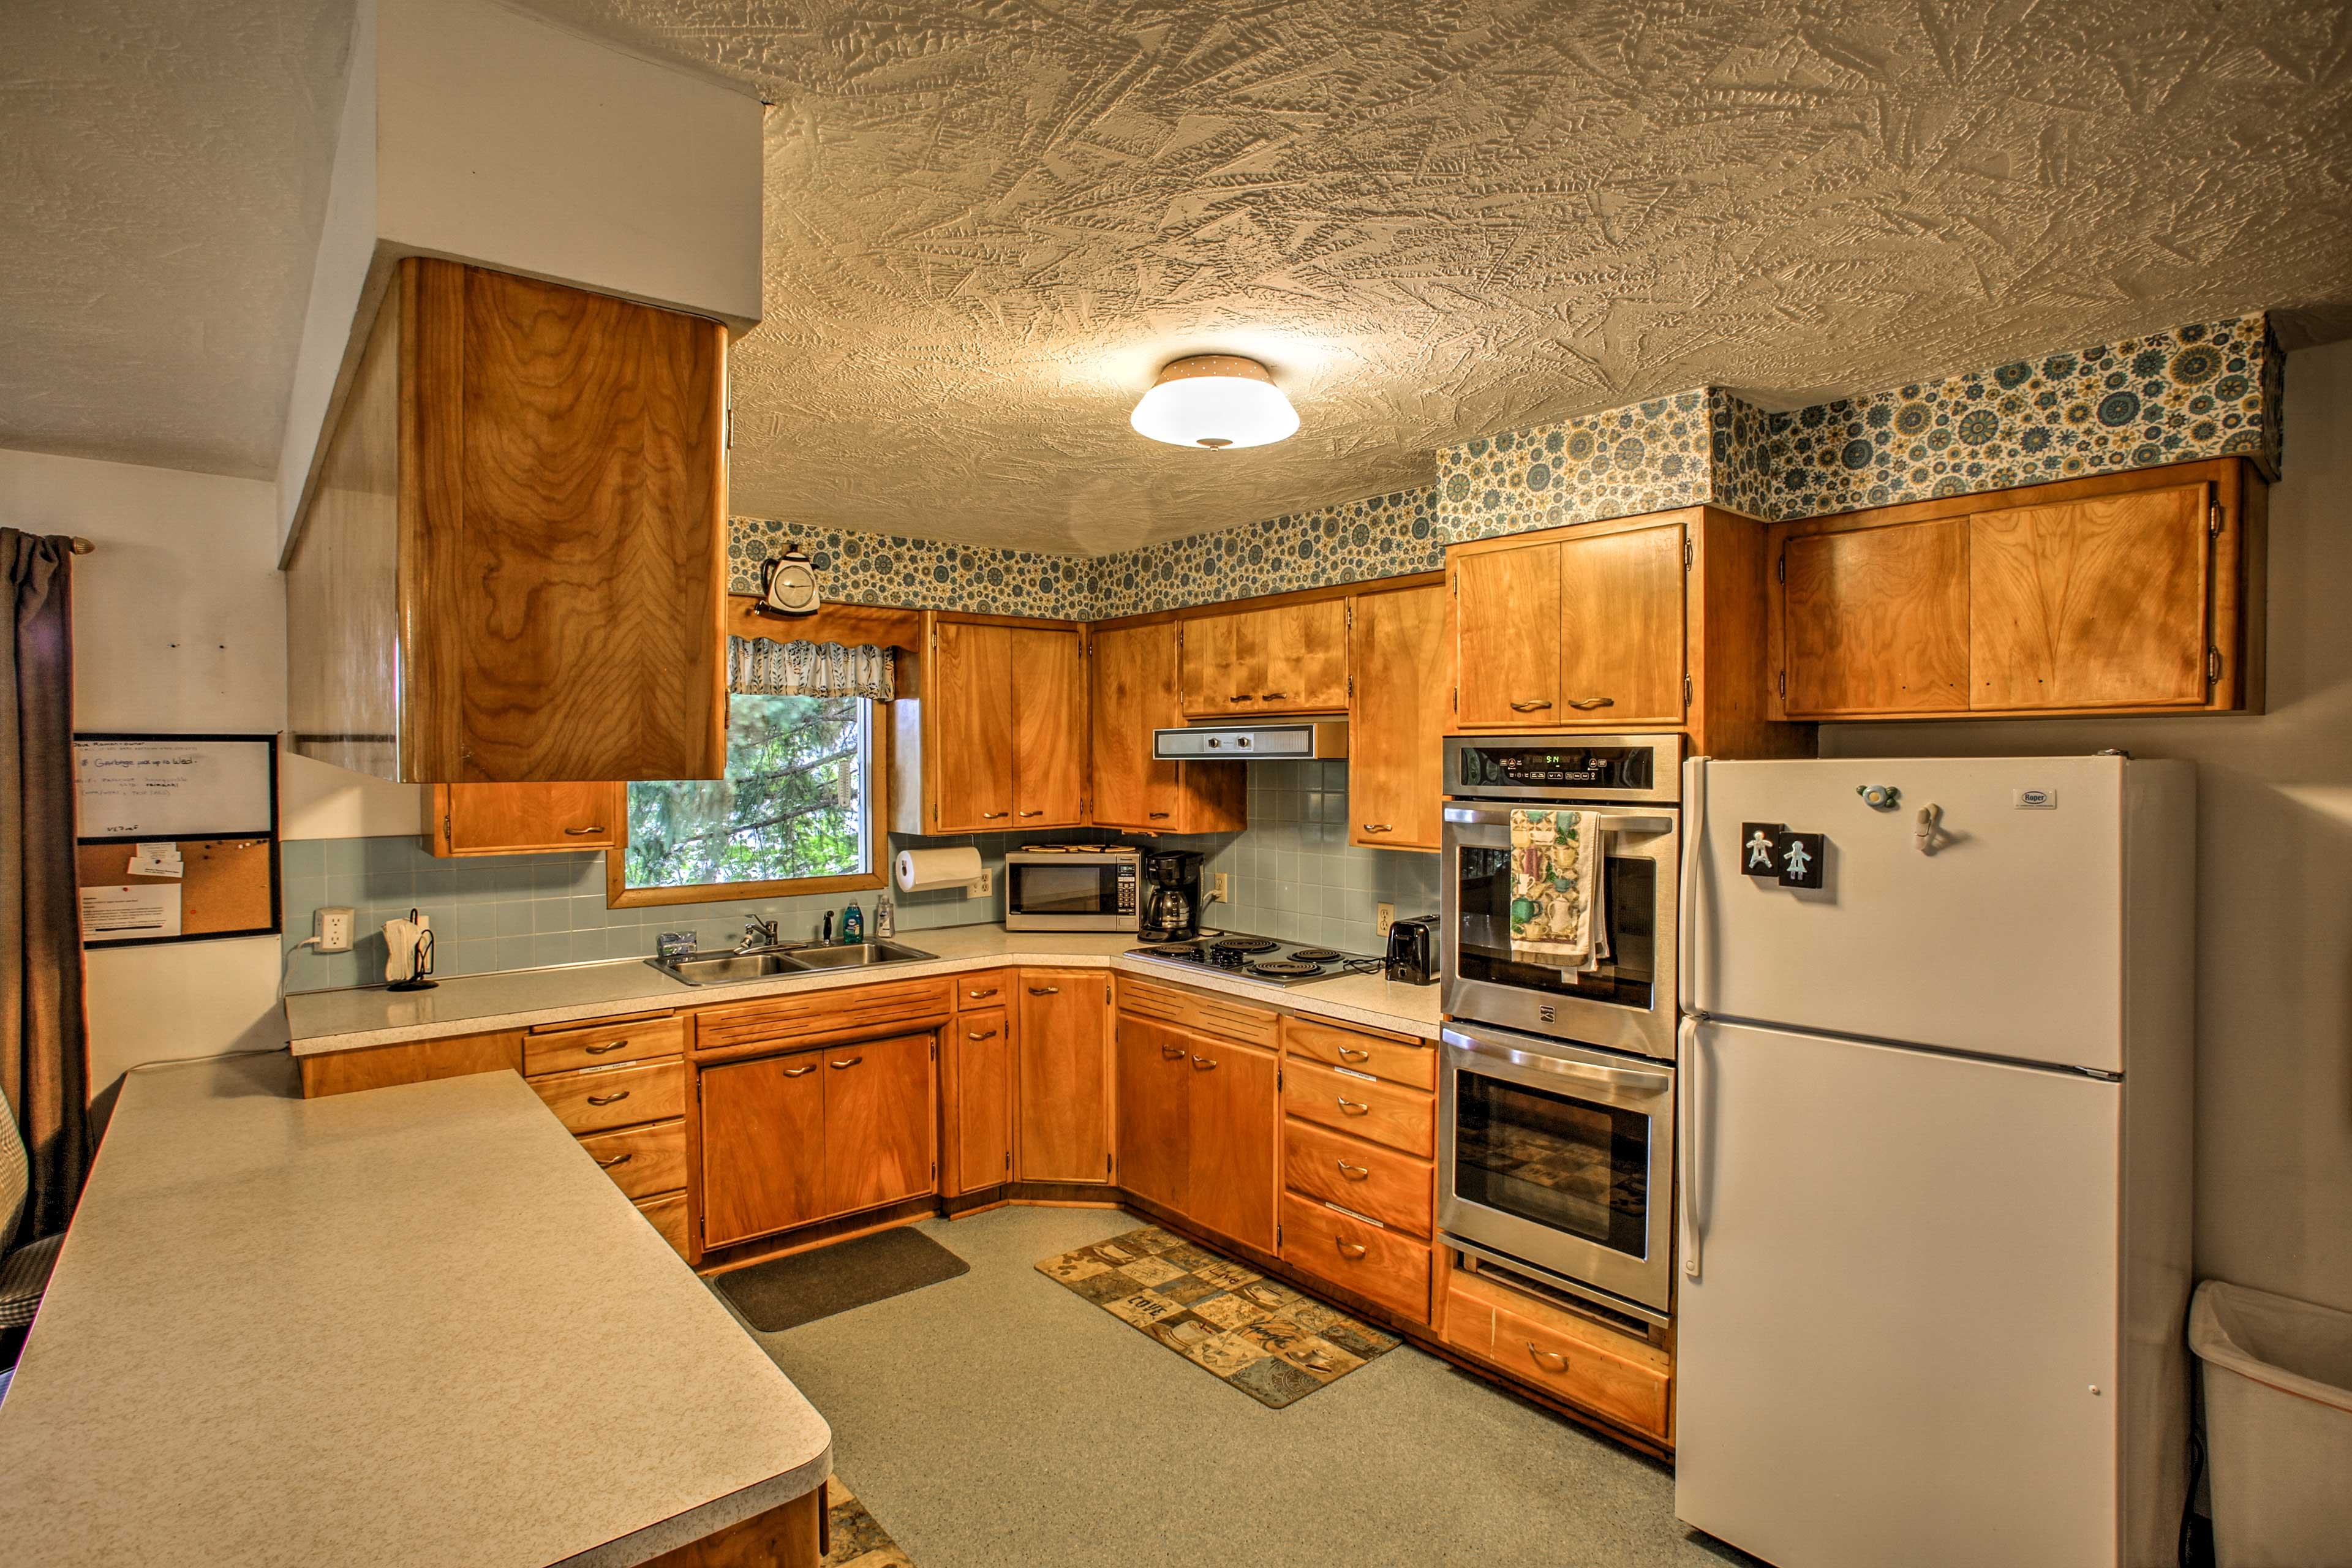 The fully equipped kitchen has everything you need to make your favorite meals.